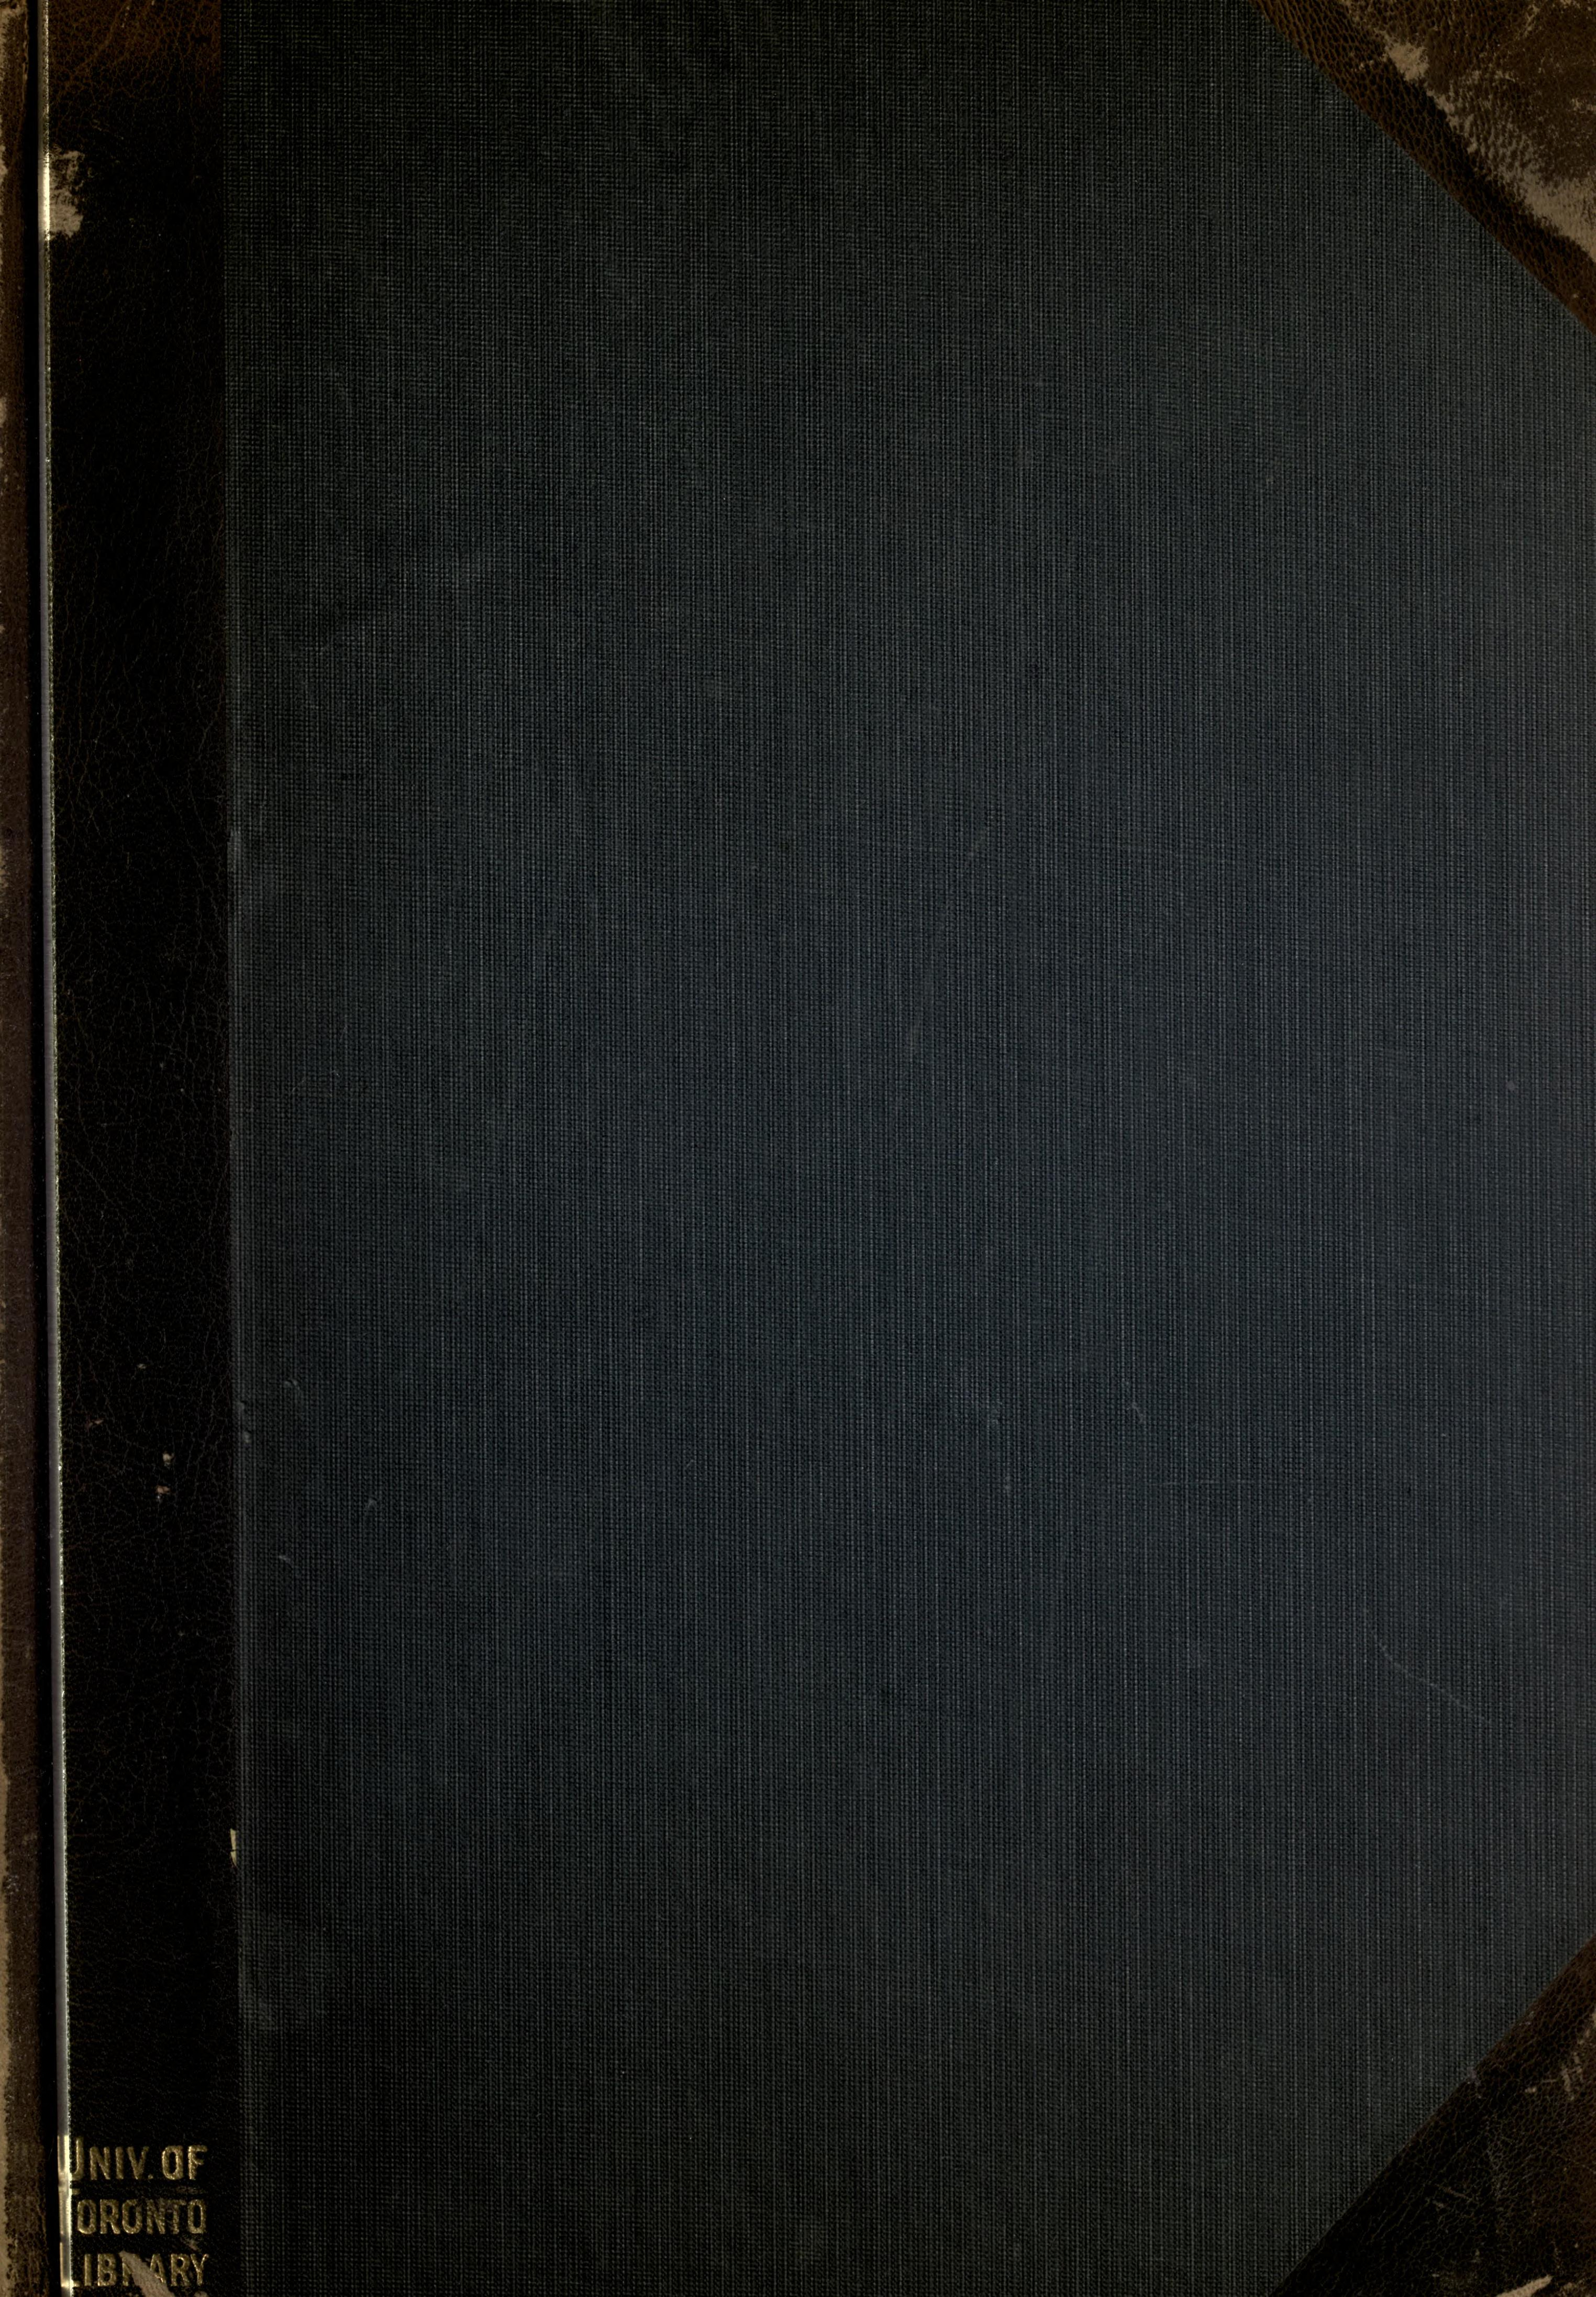 Arts And Crafts A Review Of The Work Executed By Students In The Leading Art School Of Great Britain And Ireland Holme Charles 1848 1923 Free Download Borrow And Streaming Internet Archive